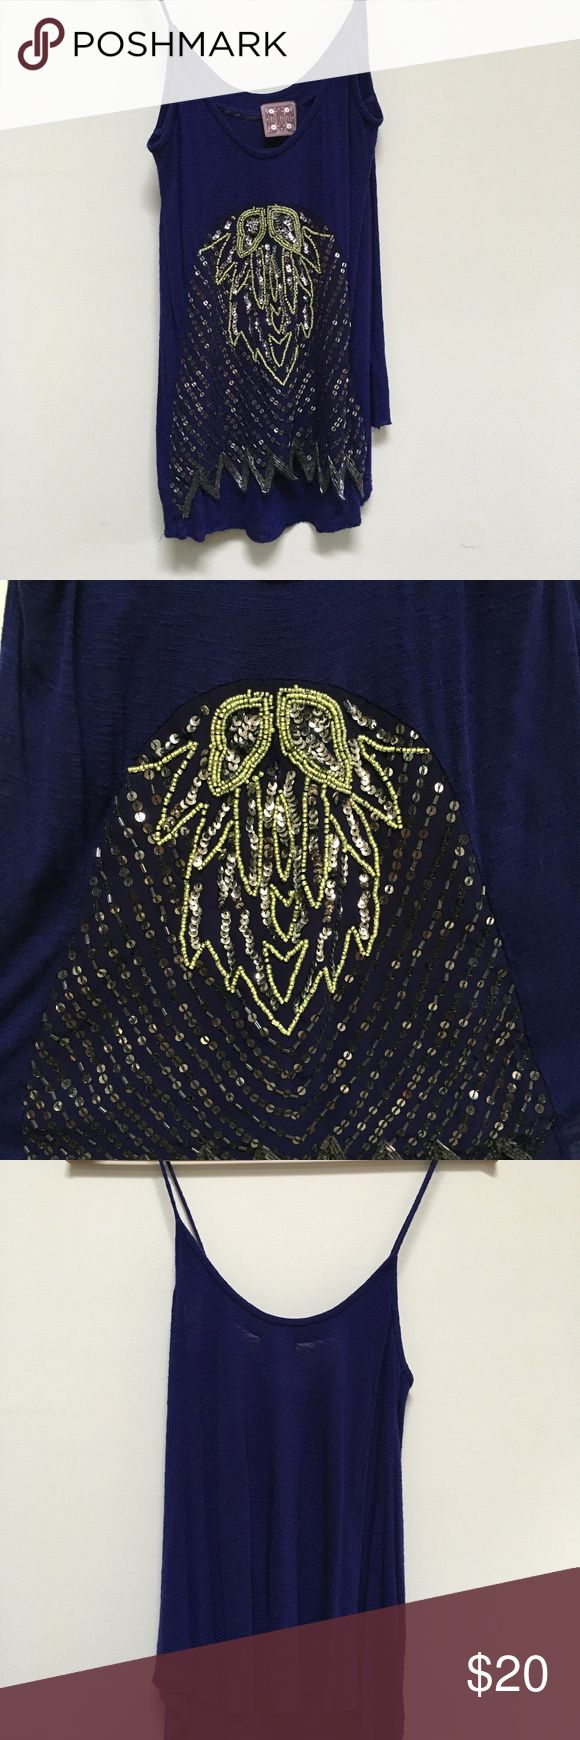 Free People Sequin Design Tank Top Size small. Gorgeous sequin tank top from Free People. Heavy front from the stitched-in sequins. Free People Tops Tank Tops